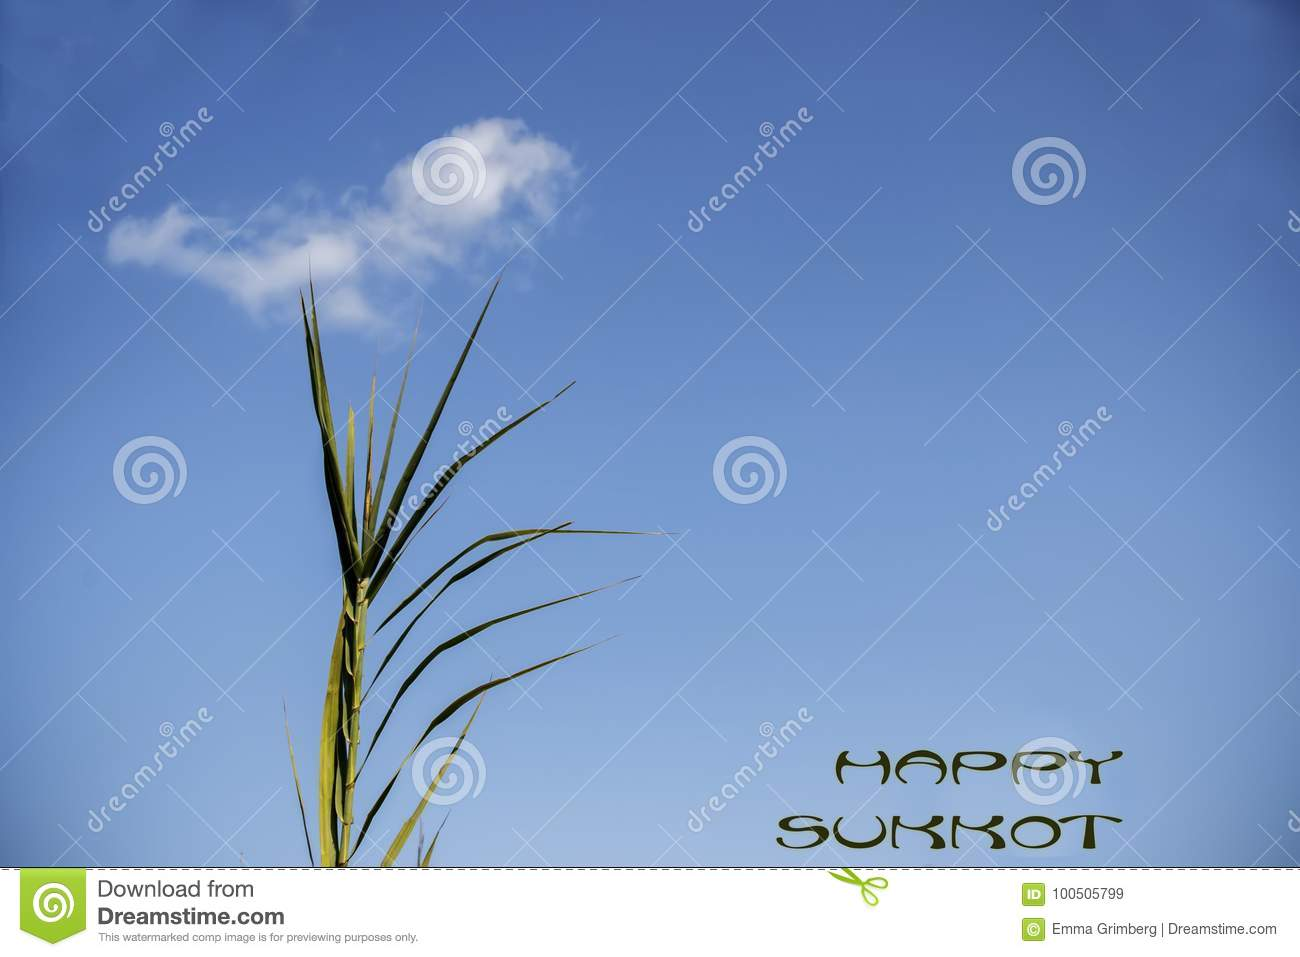 Jewish holiday happy sukkot greeting card stock image image of download comp m4hsunfo